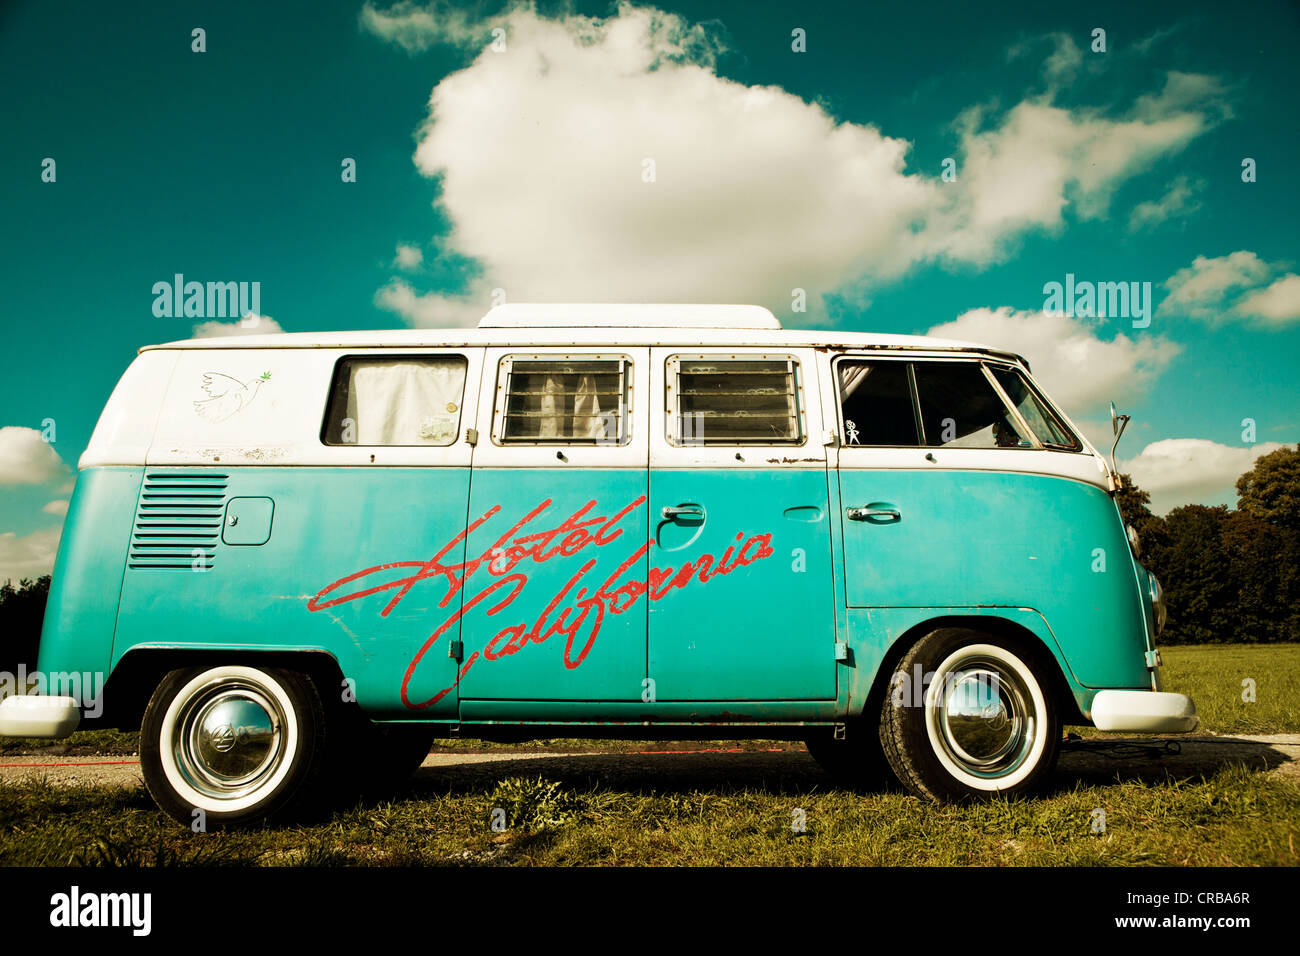 Vw camper van hippie bus t1 1960s original turqouise and white vw camper van hippie bus t1 1960s original turqouise and white colour white wall tyres elevating roof and inscription thecheapjerseys Choice Image